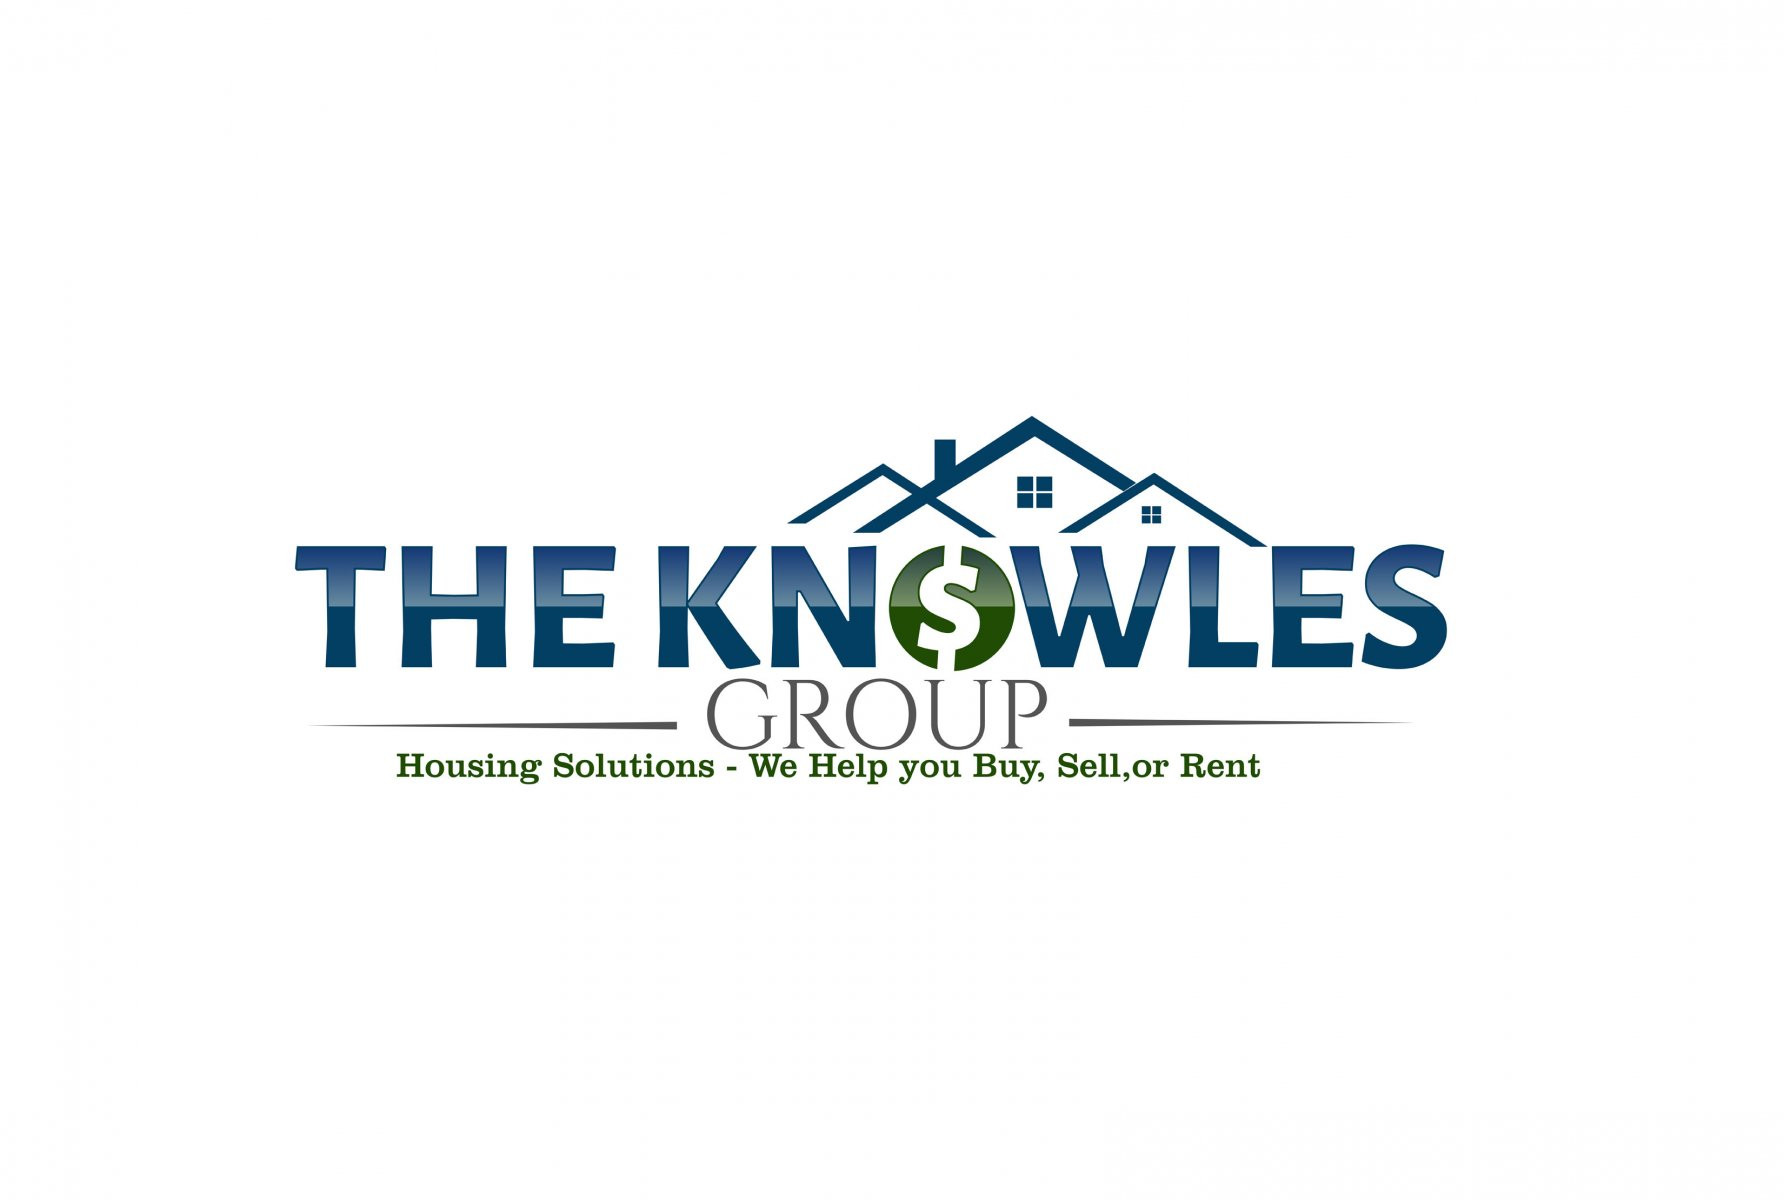 The Knowles Group logo